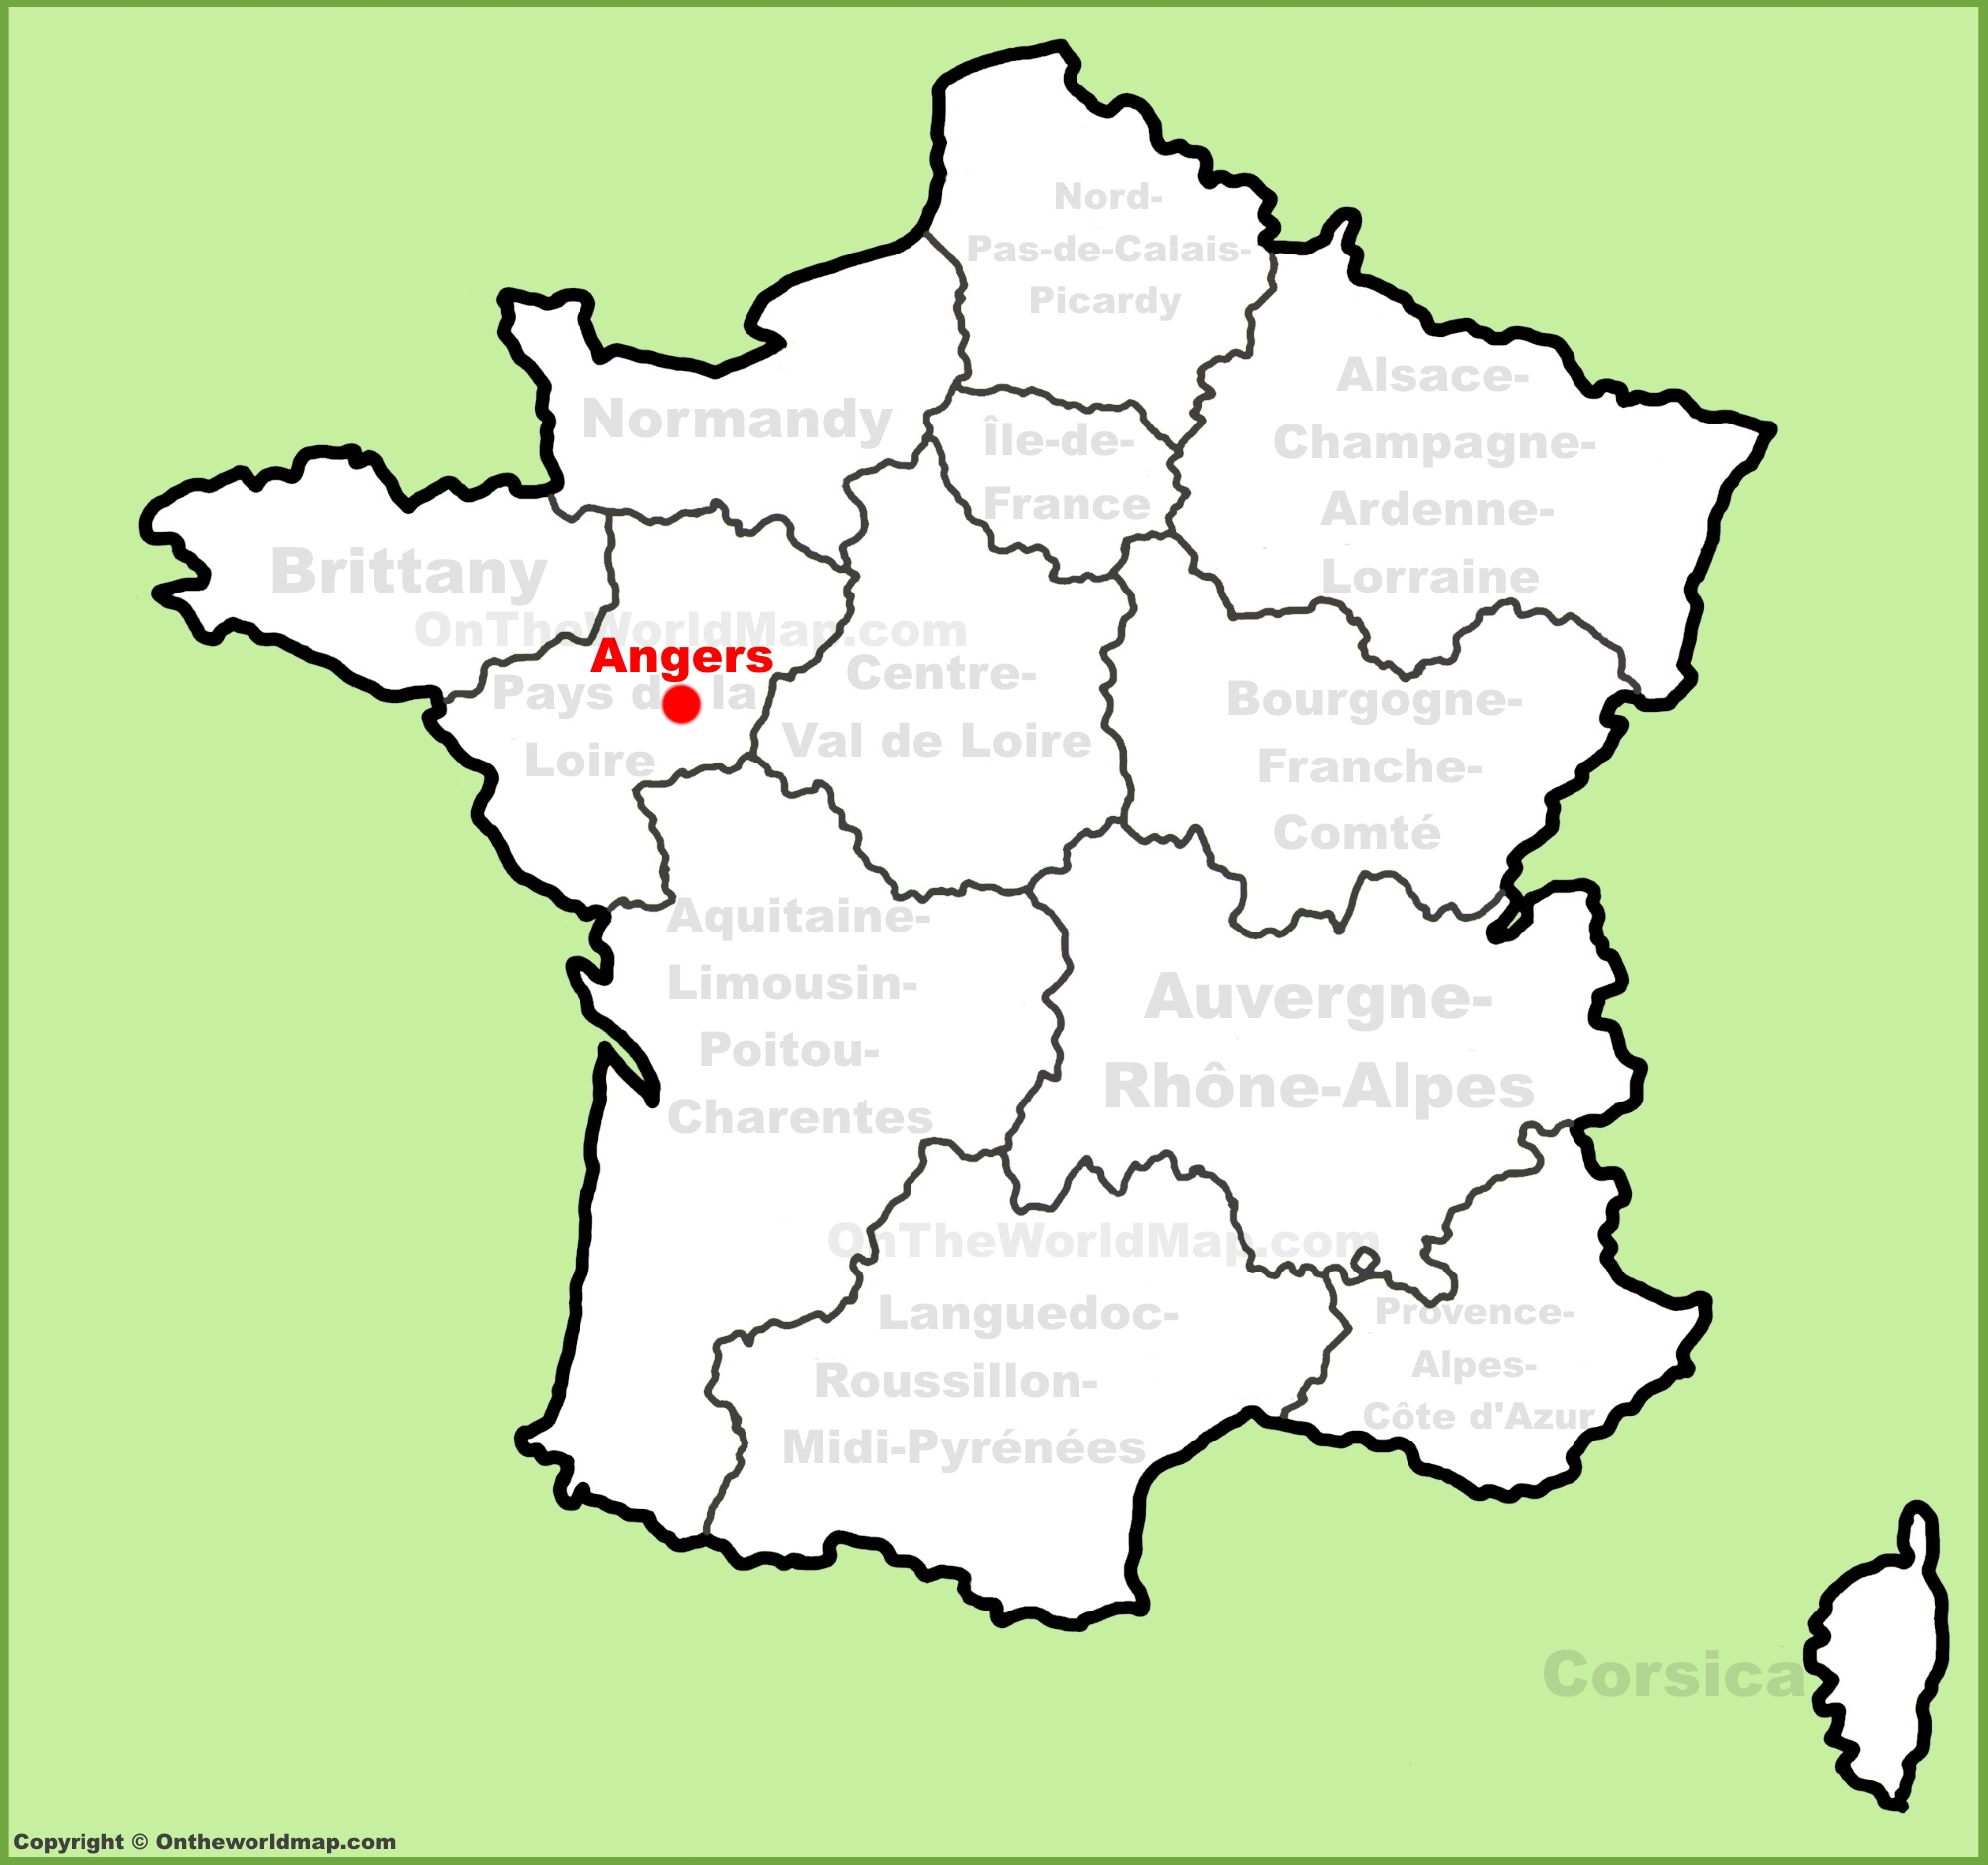 Angers location on the France map